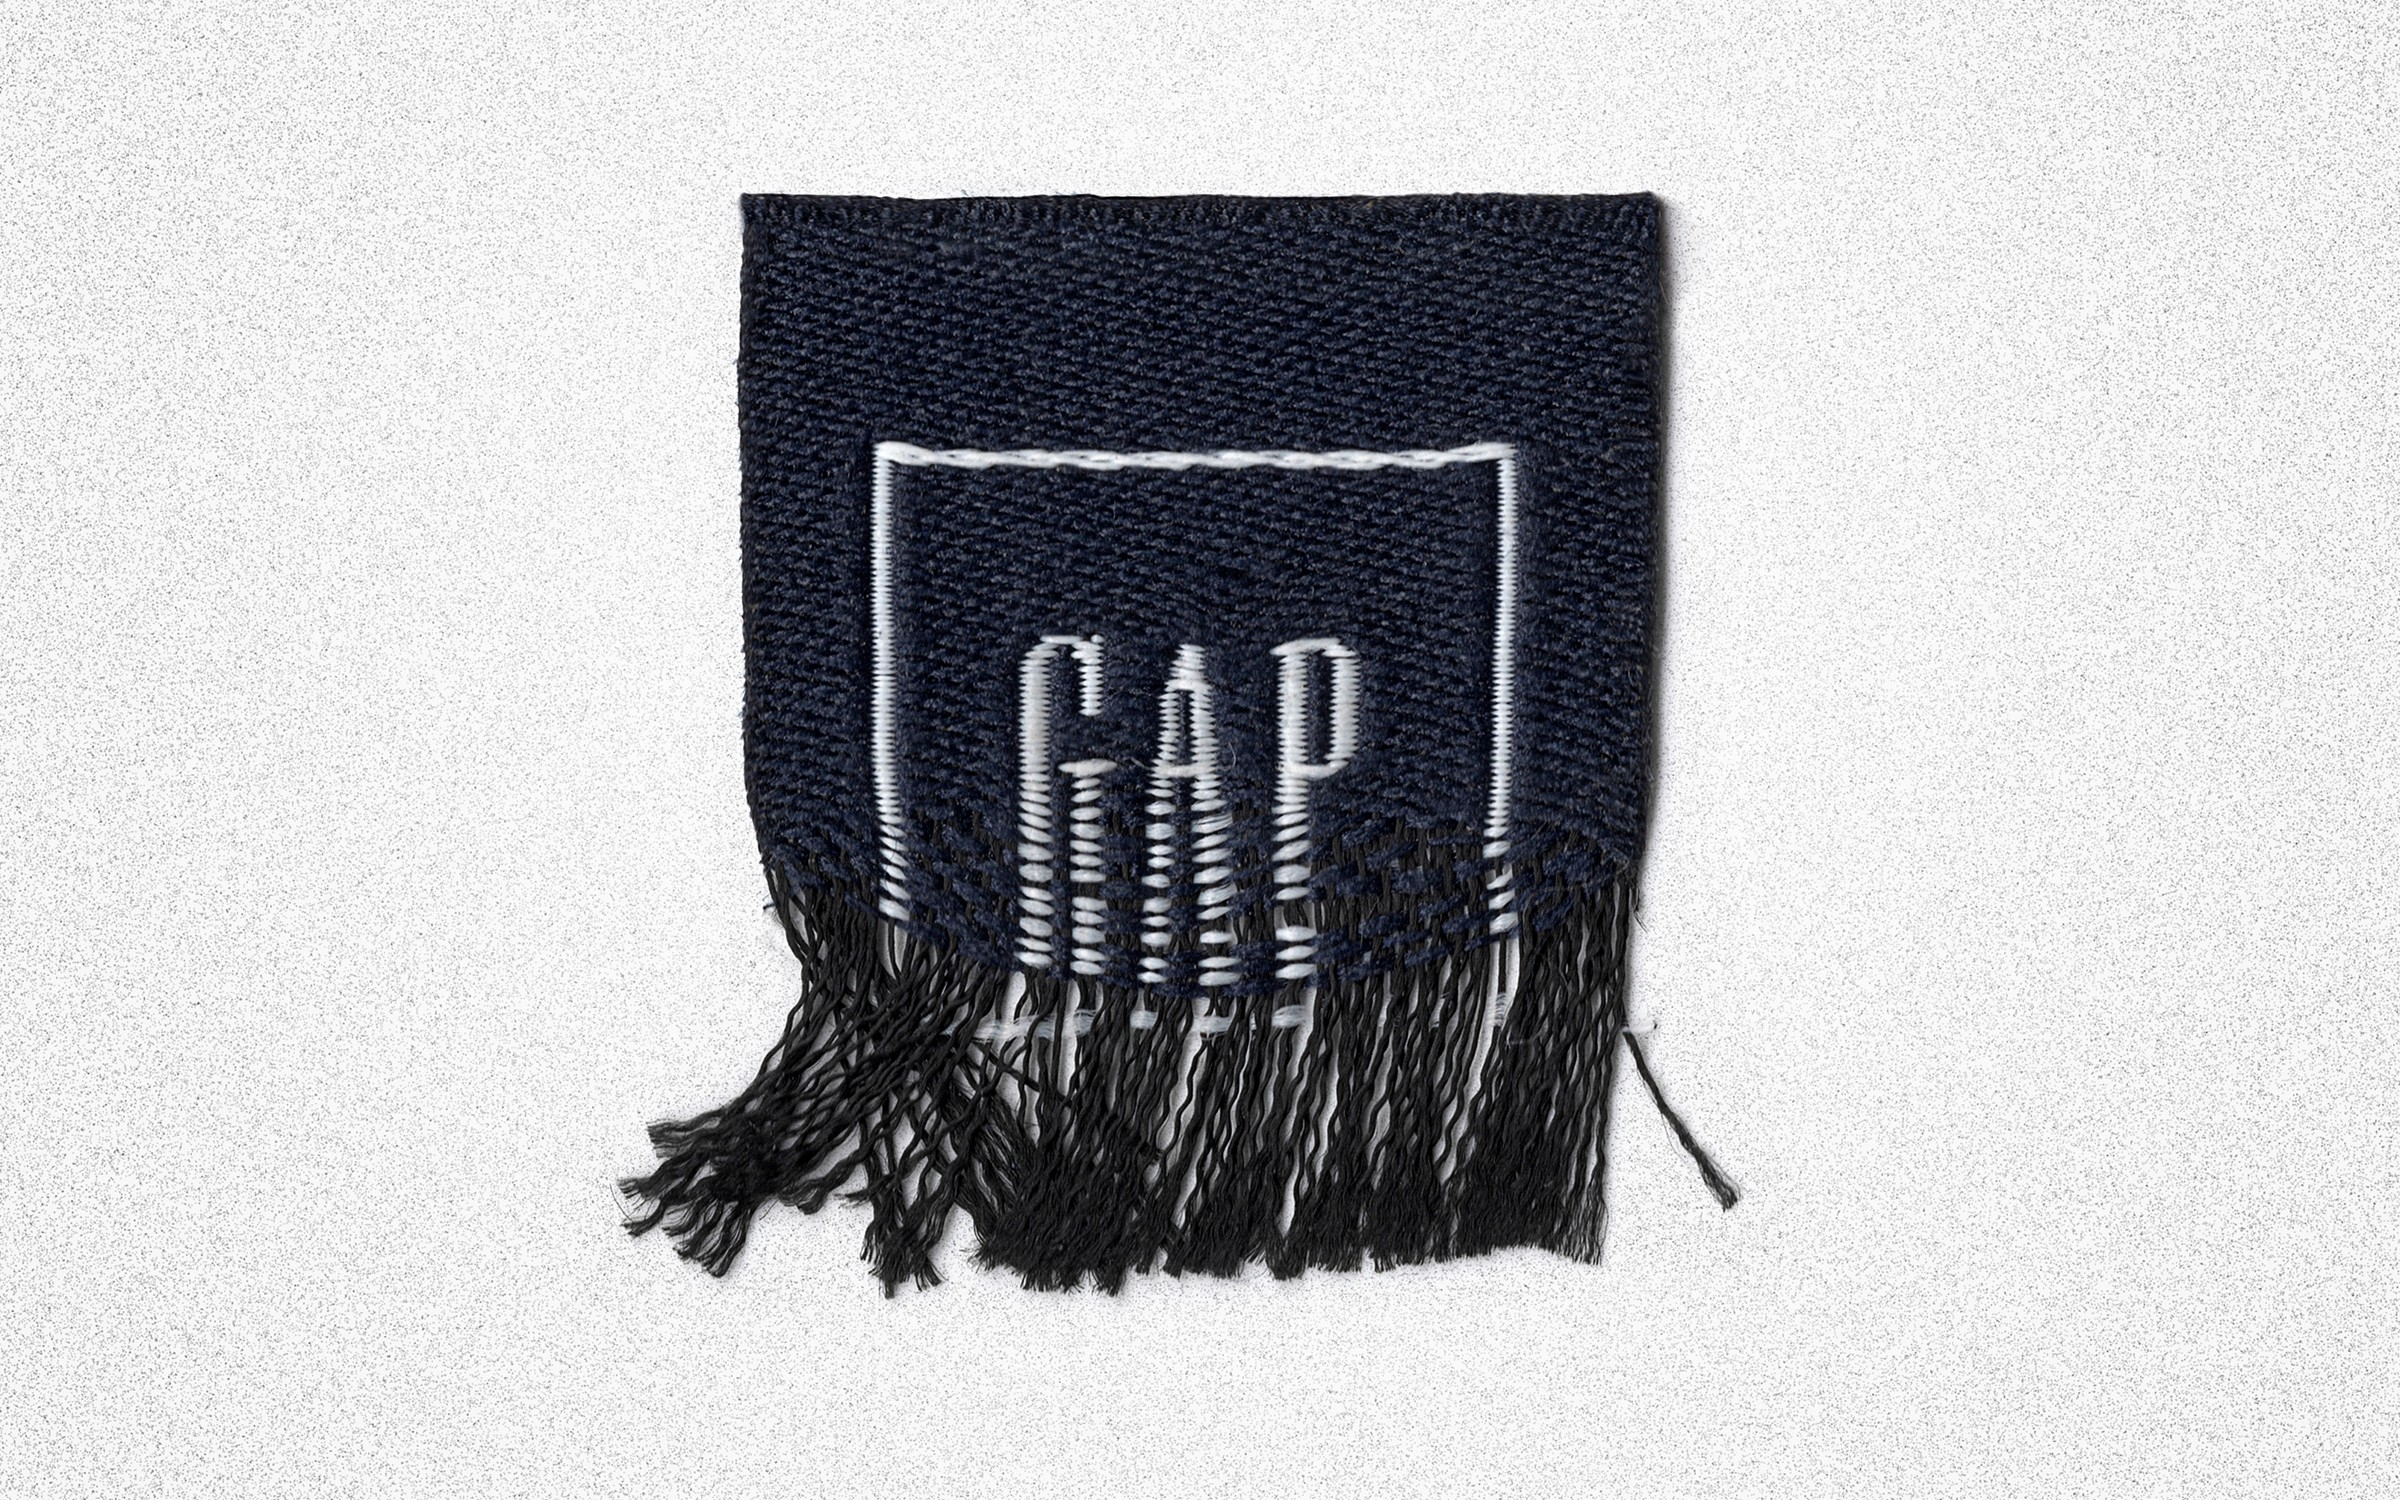 The fabric hang tag with The Gap logo unravels and falls apart.